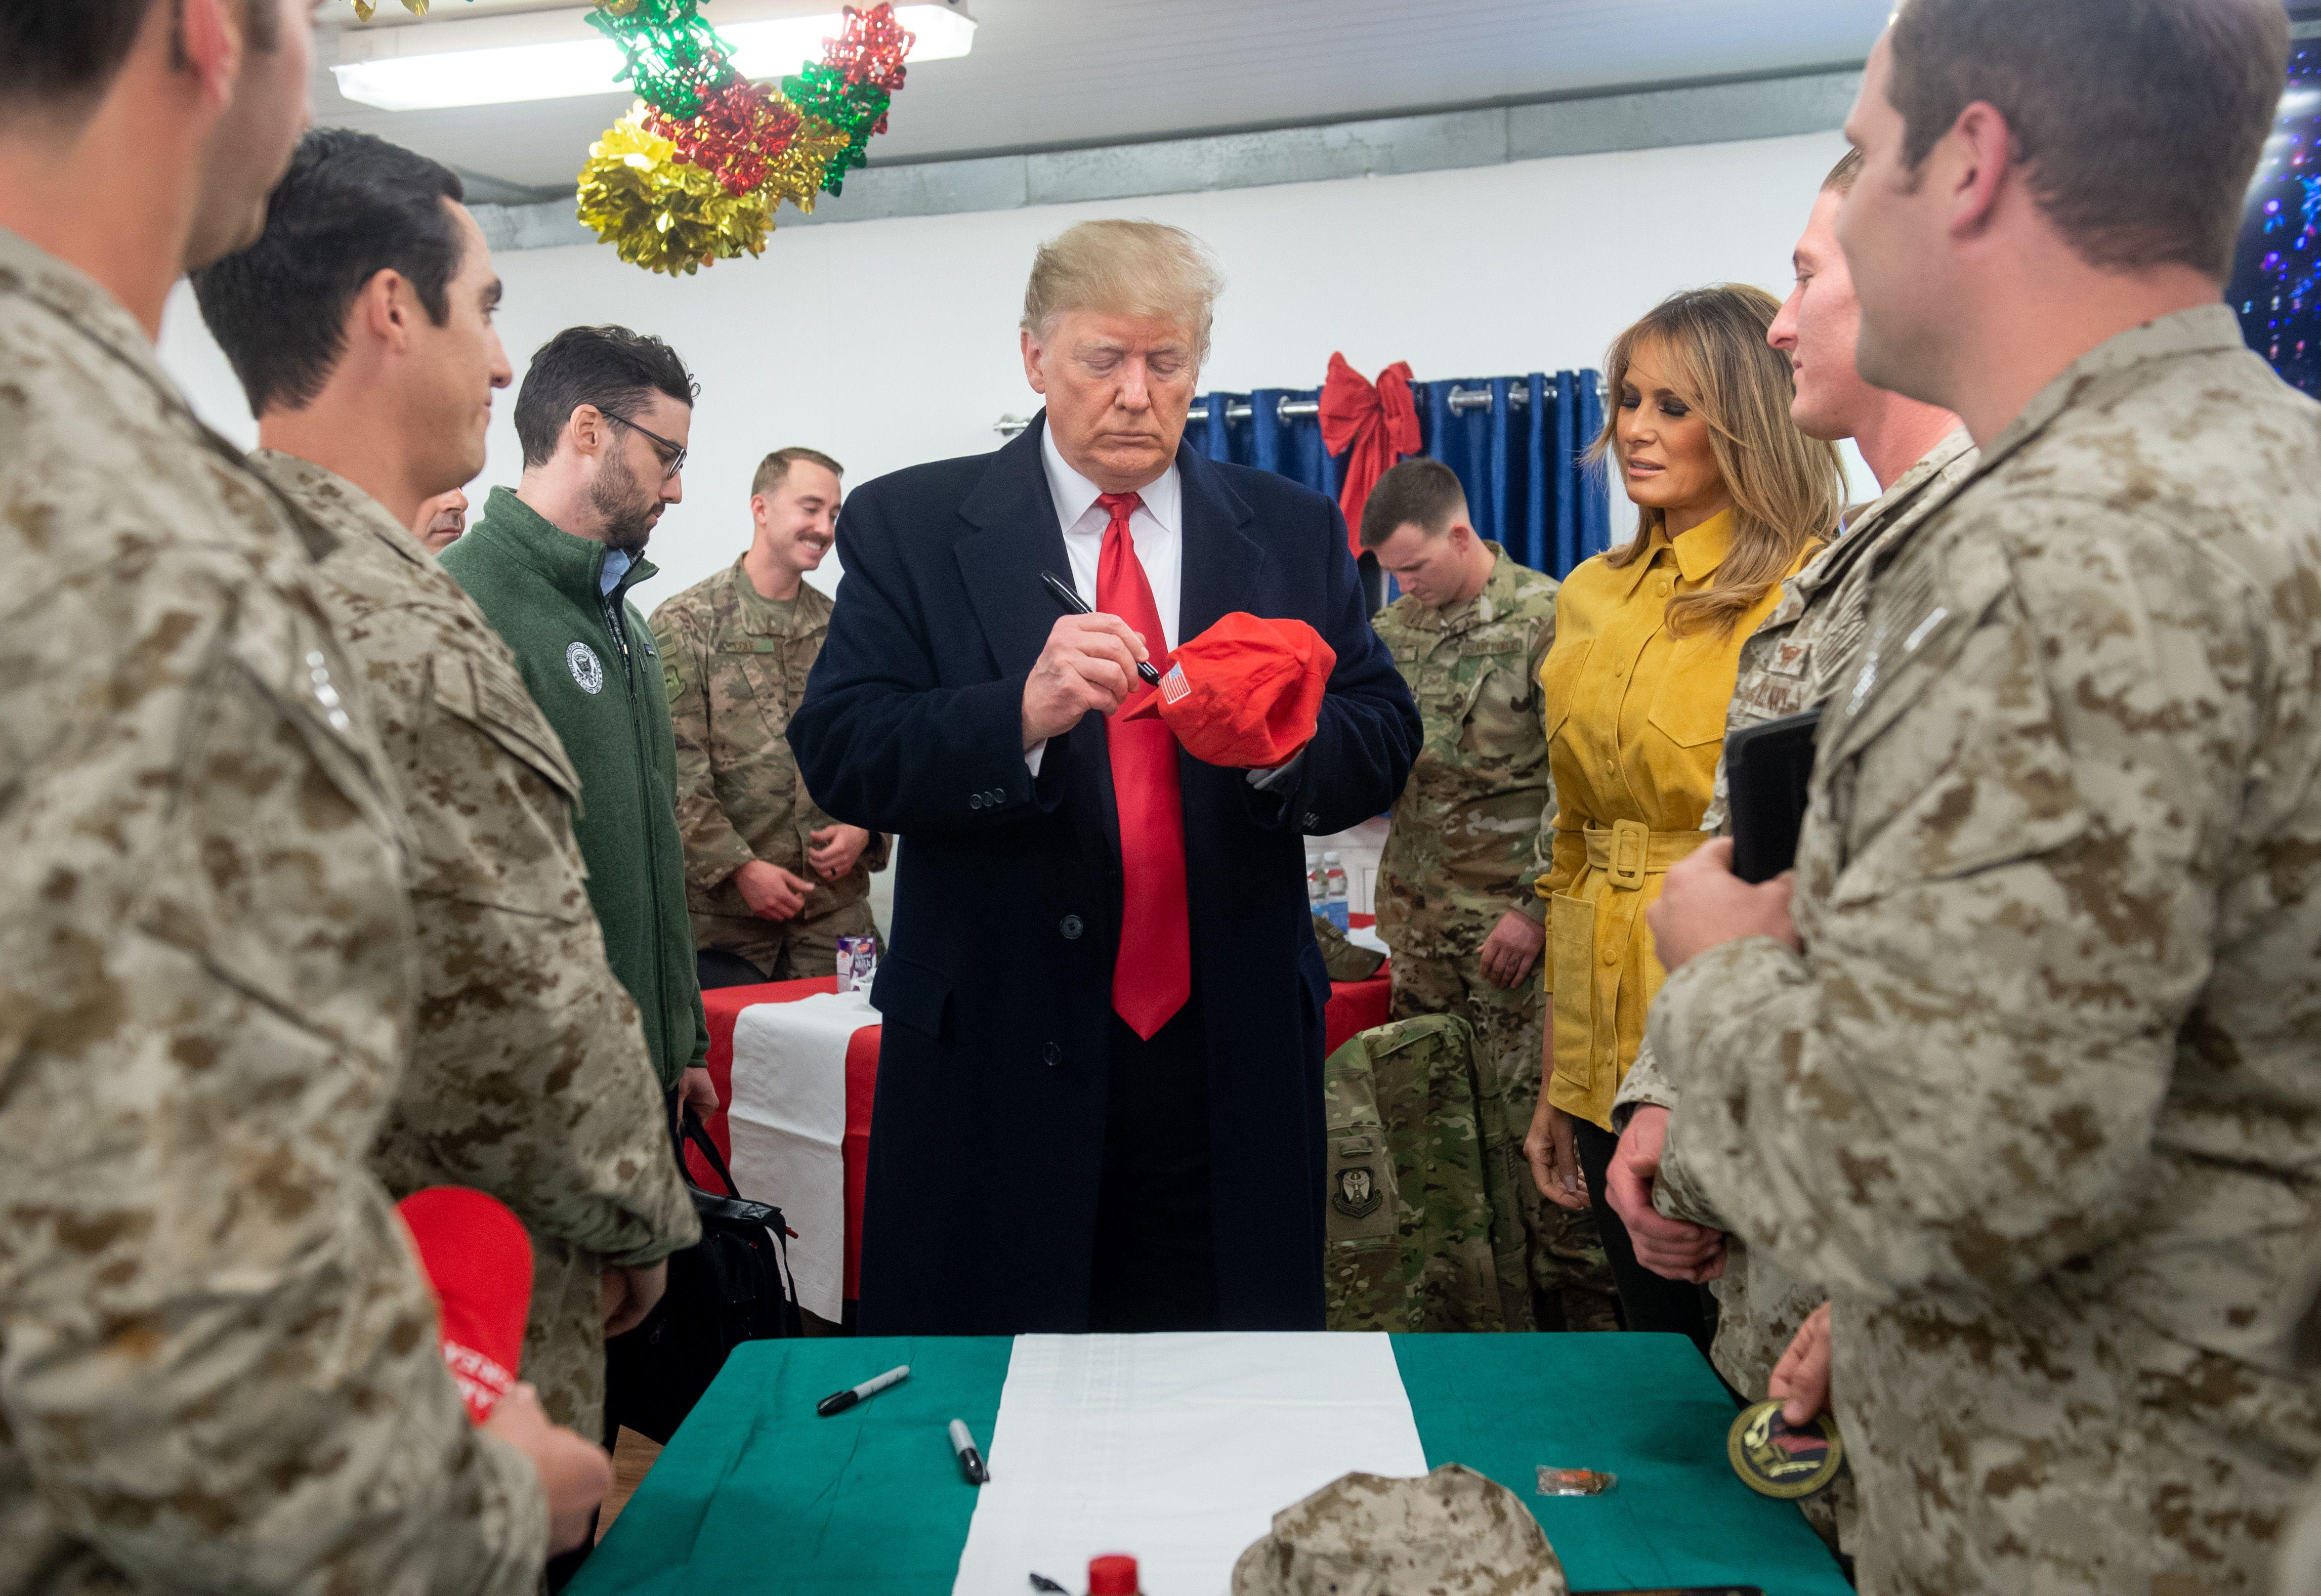 President Donald Trump signs a hat as First Lady Melania Trump looks on as they greet members of the U.S. military during an unannounced trip to Al Asad Air Base in Iraq on December 26, 2018.